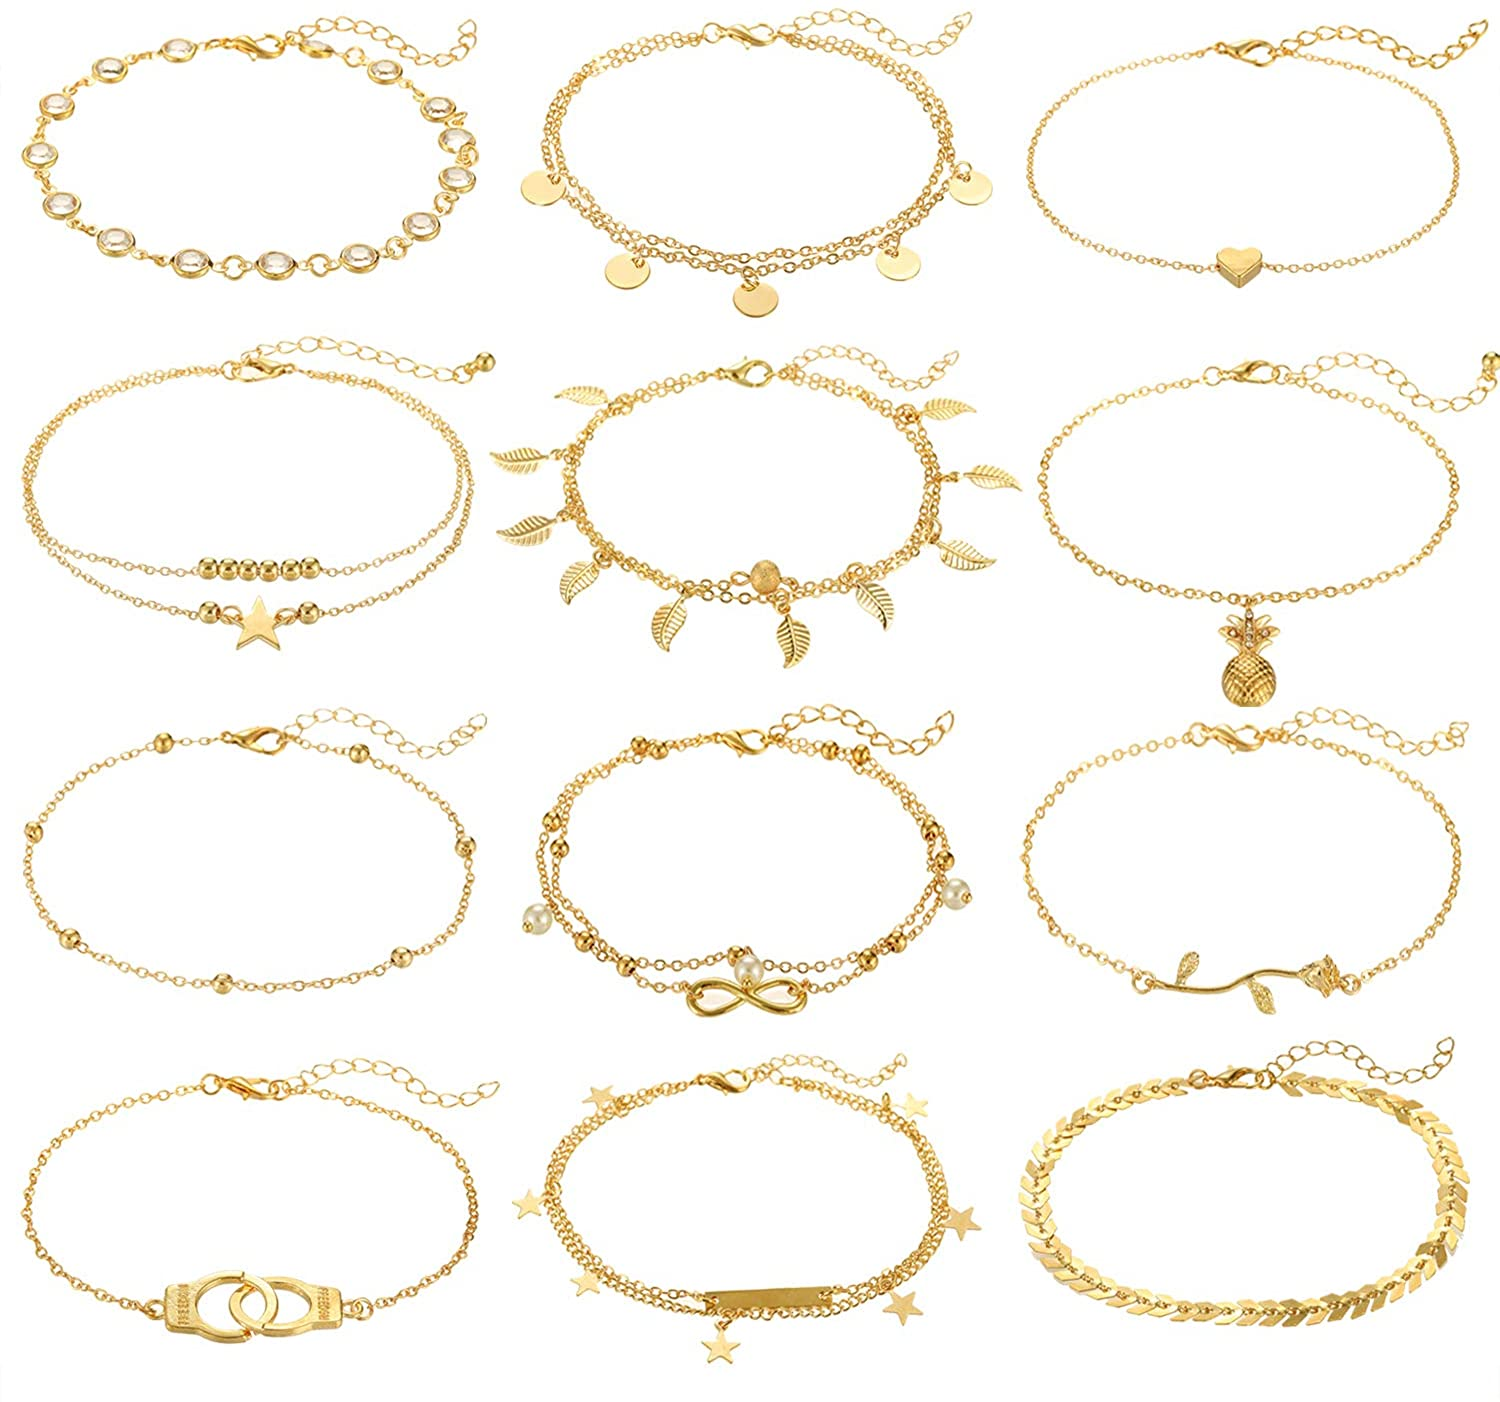 FUNEIA 12Pcs Anklets for Women Silver Gold Ankle Bracelets Set Boho Layered Beach Adjustable Chain Anklet Foot Jewelry